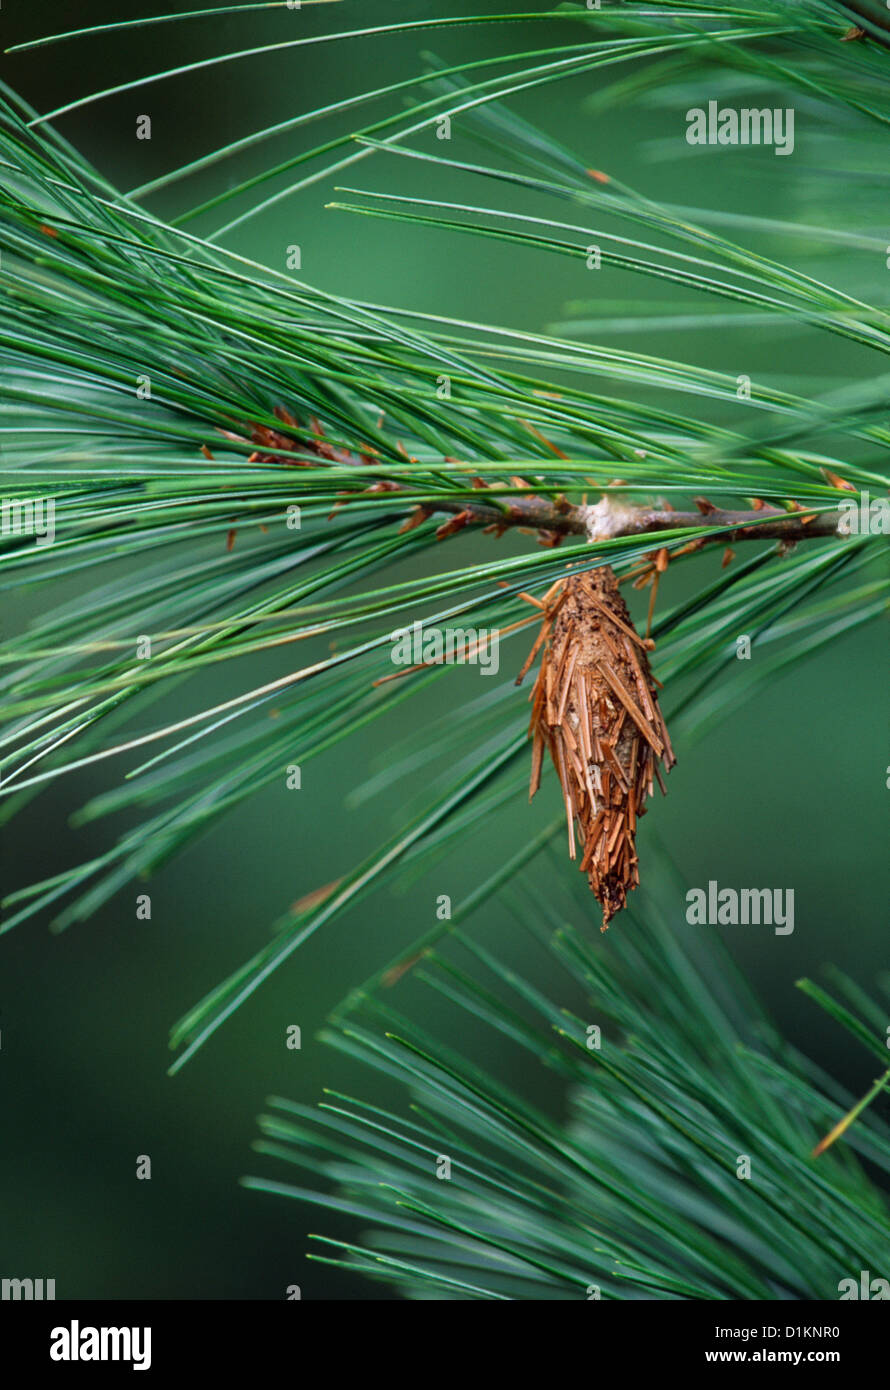 BAG OF THE EVERGREEN BAGWORM (THYRIDOPTERYX EPHEMERAEFORMIS) PEST OF ORNAMENTAL TREES AND SHRUBS LITITZ, PA Stock Photo